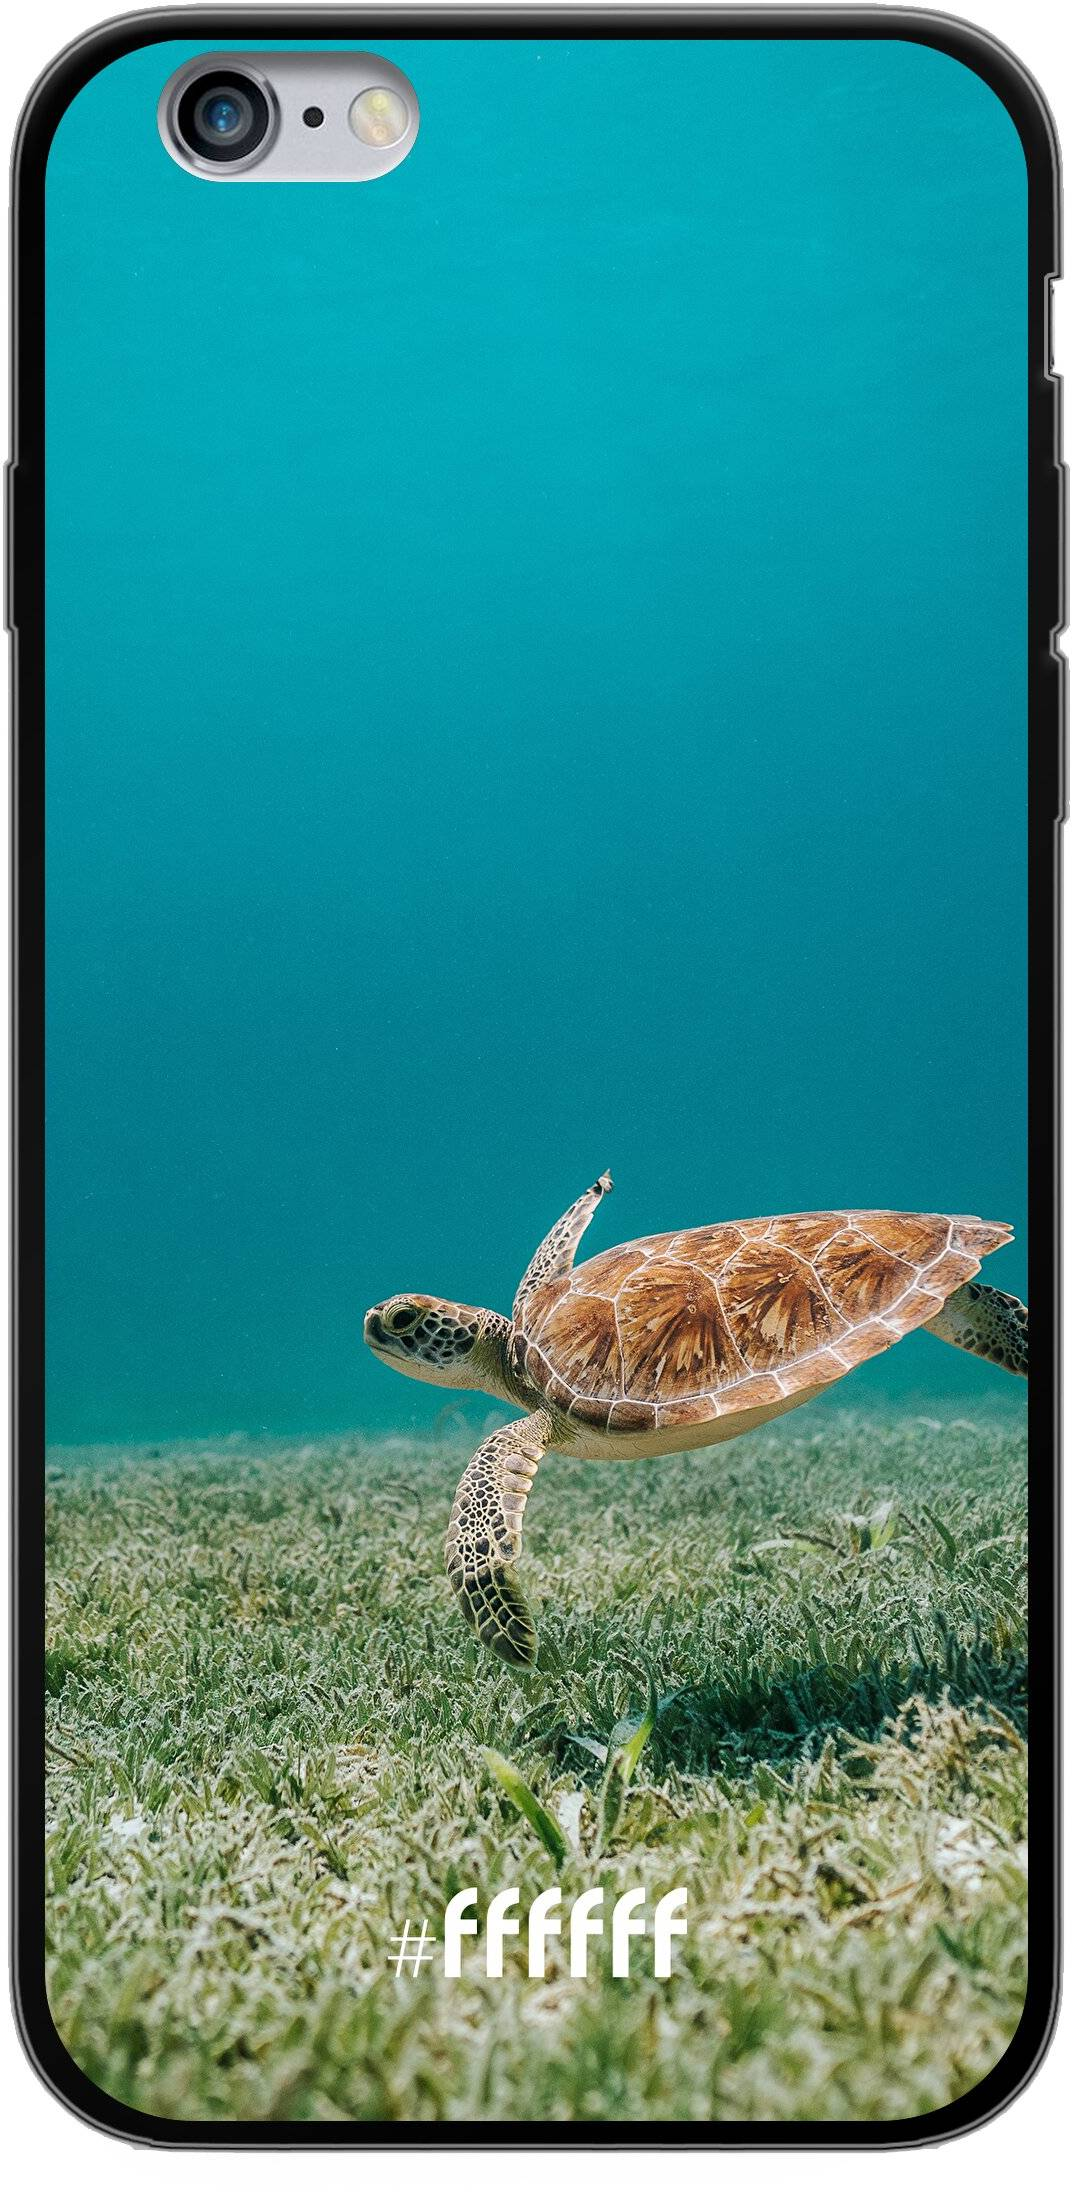 Turtle iPhone 6s